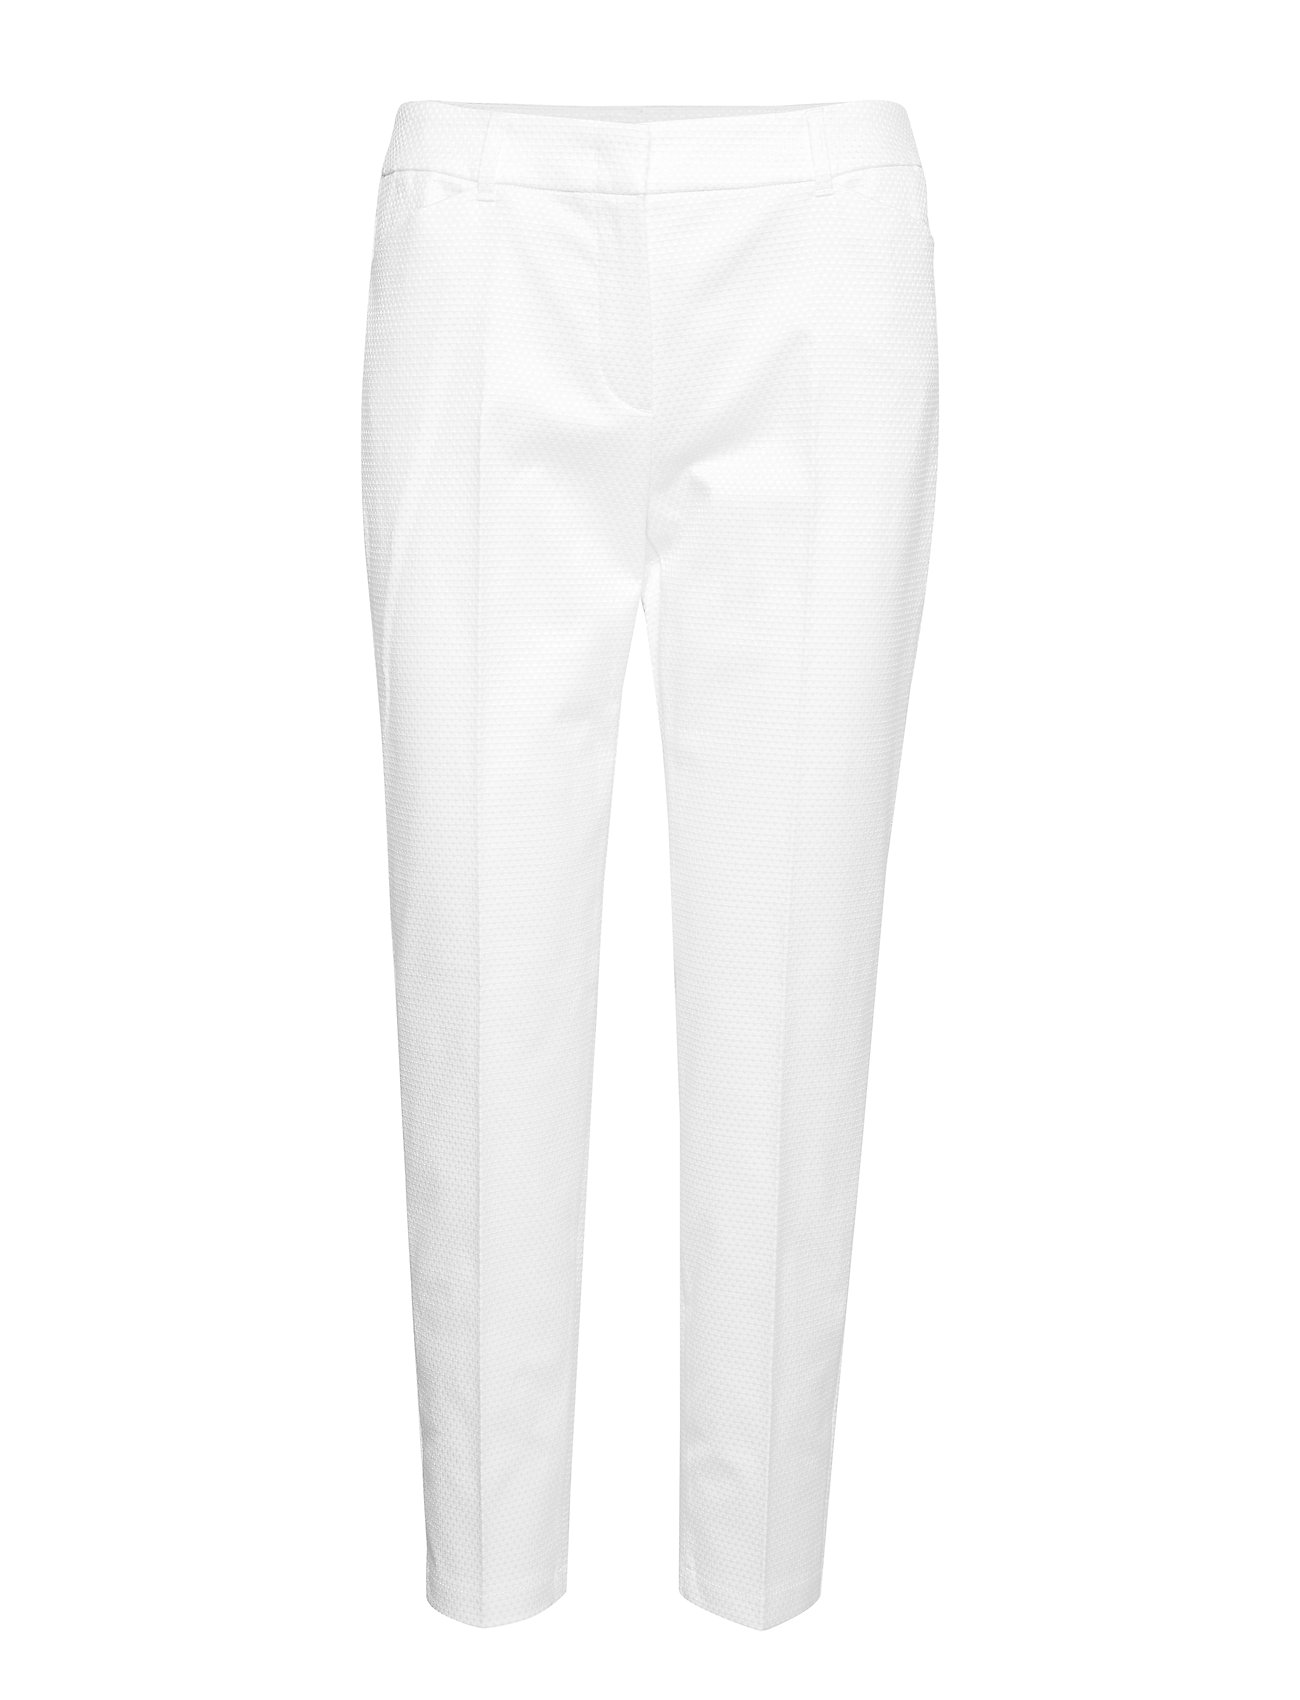 Taifun CROP LEISURE TROUSER - OFF-WHITE